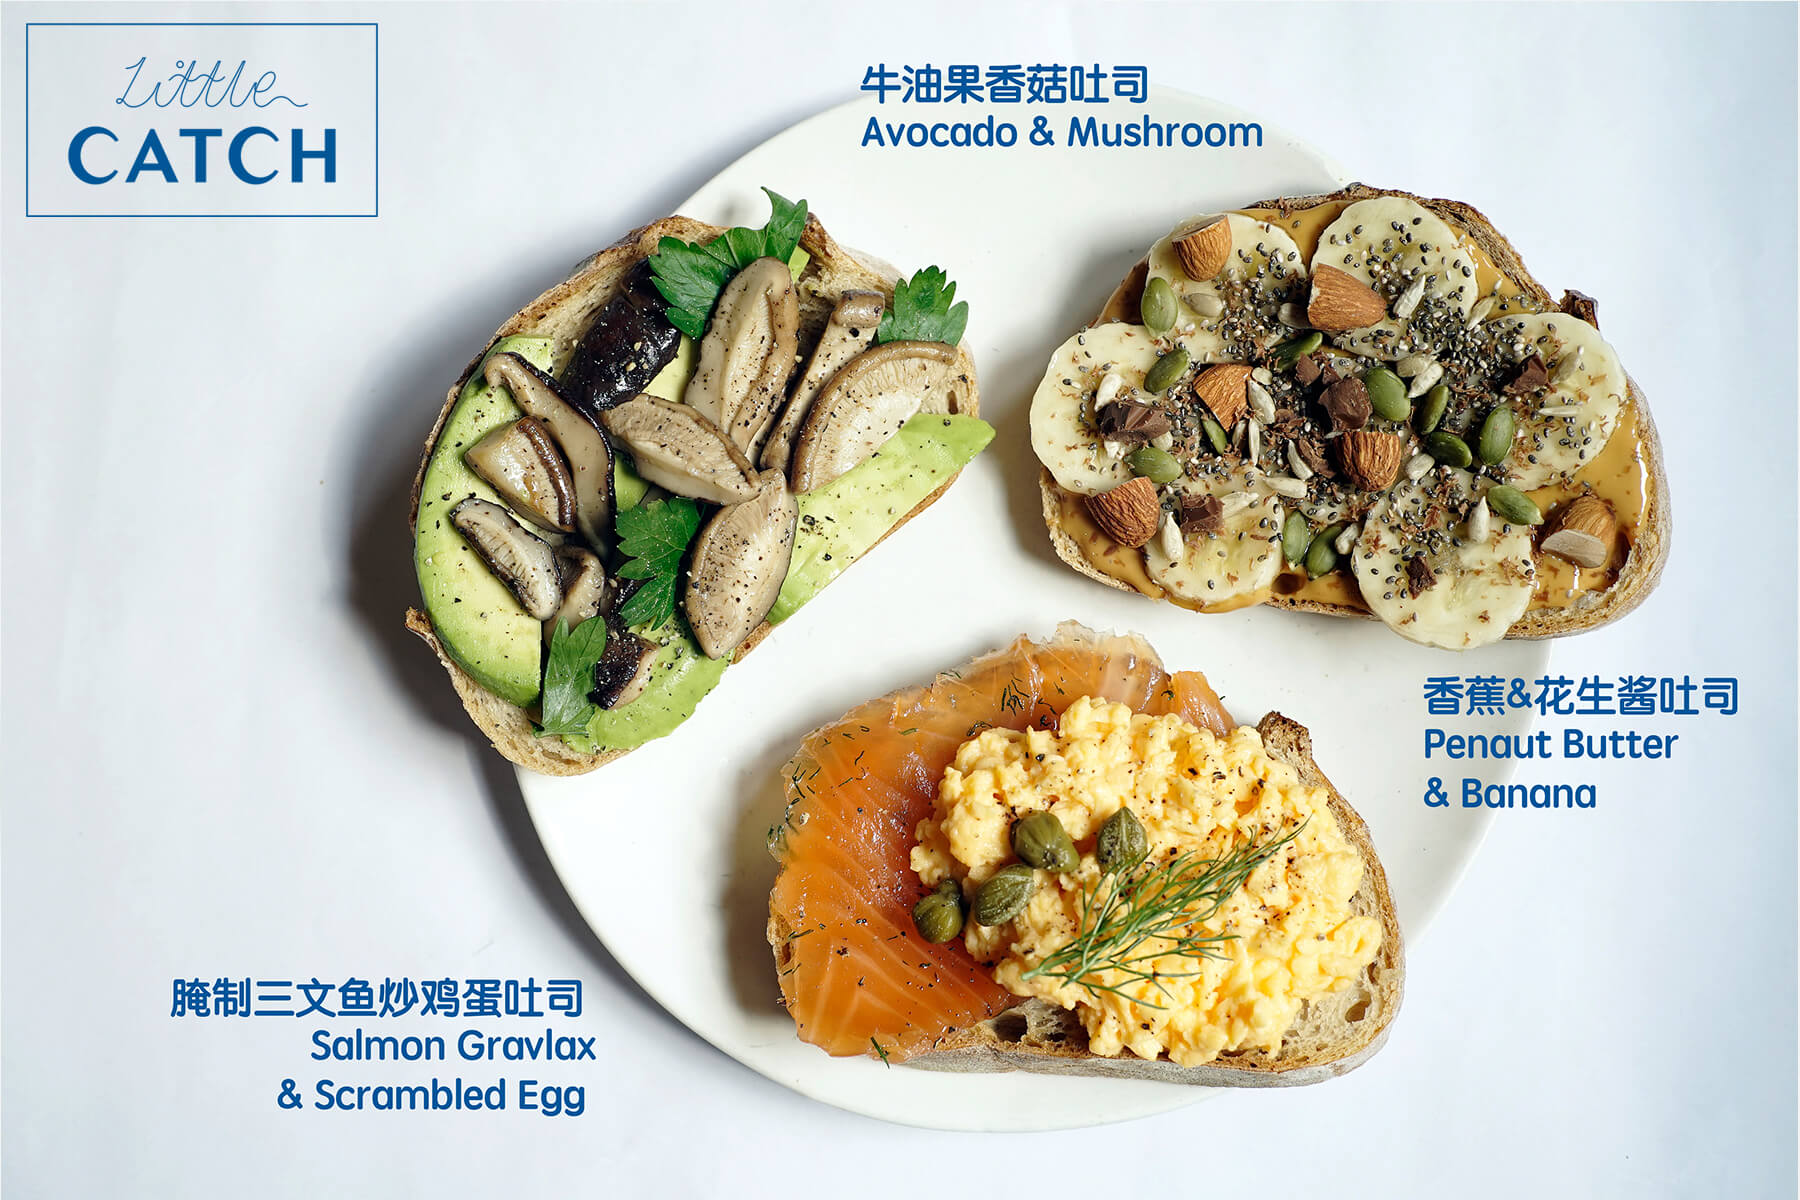 LC Catering - Breakfast Toasts 20180810xxx.jpg